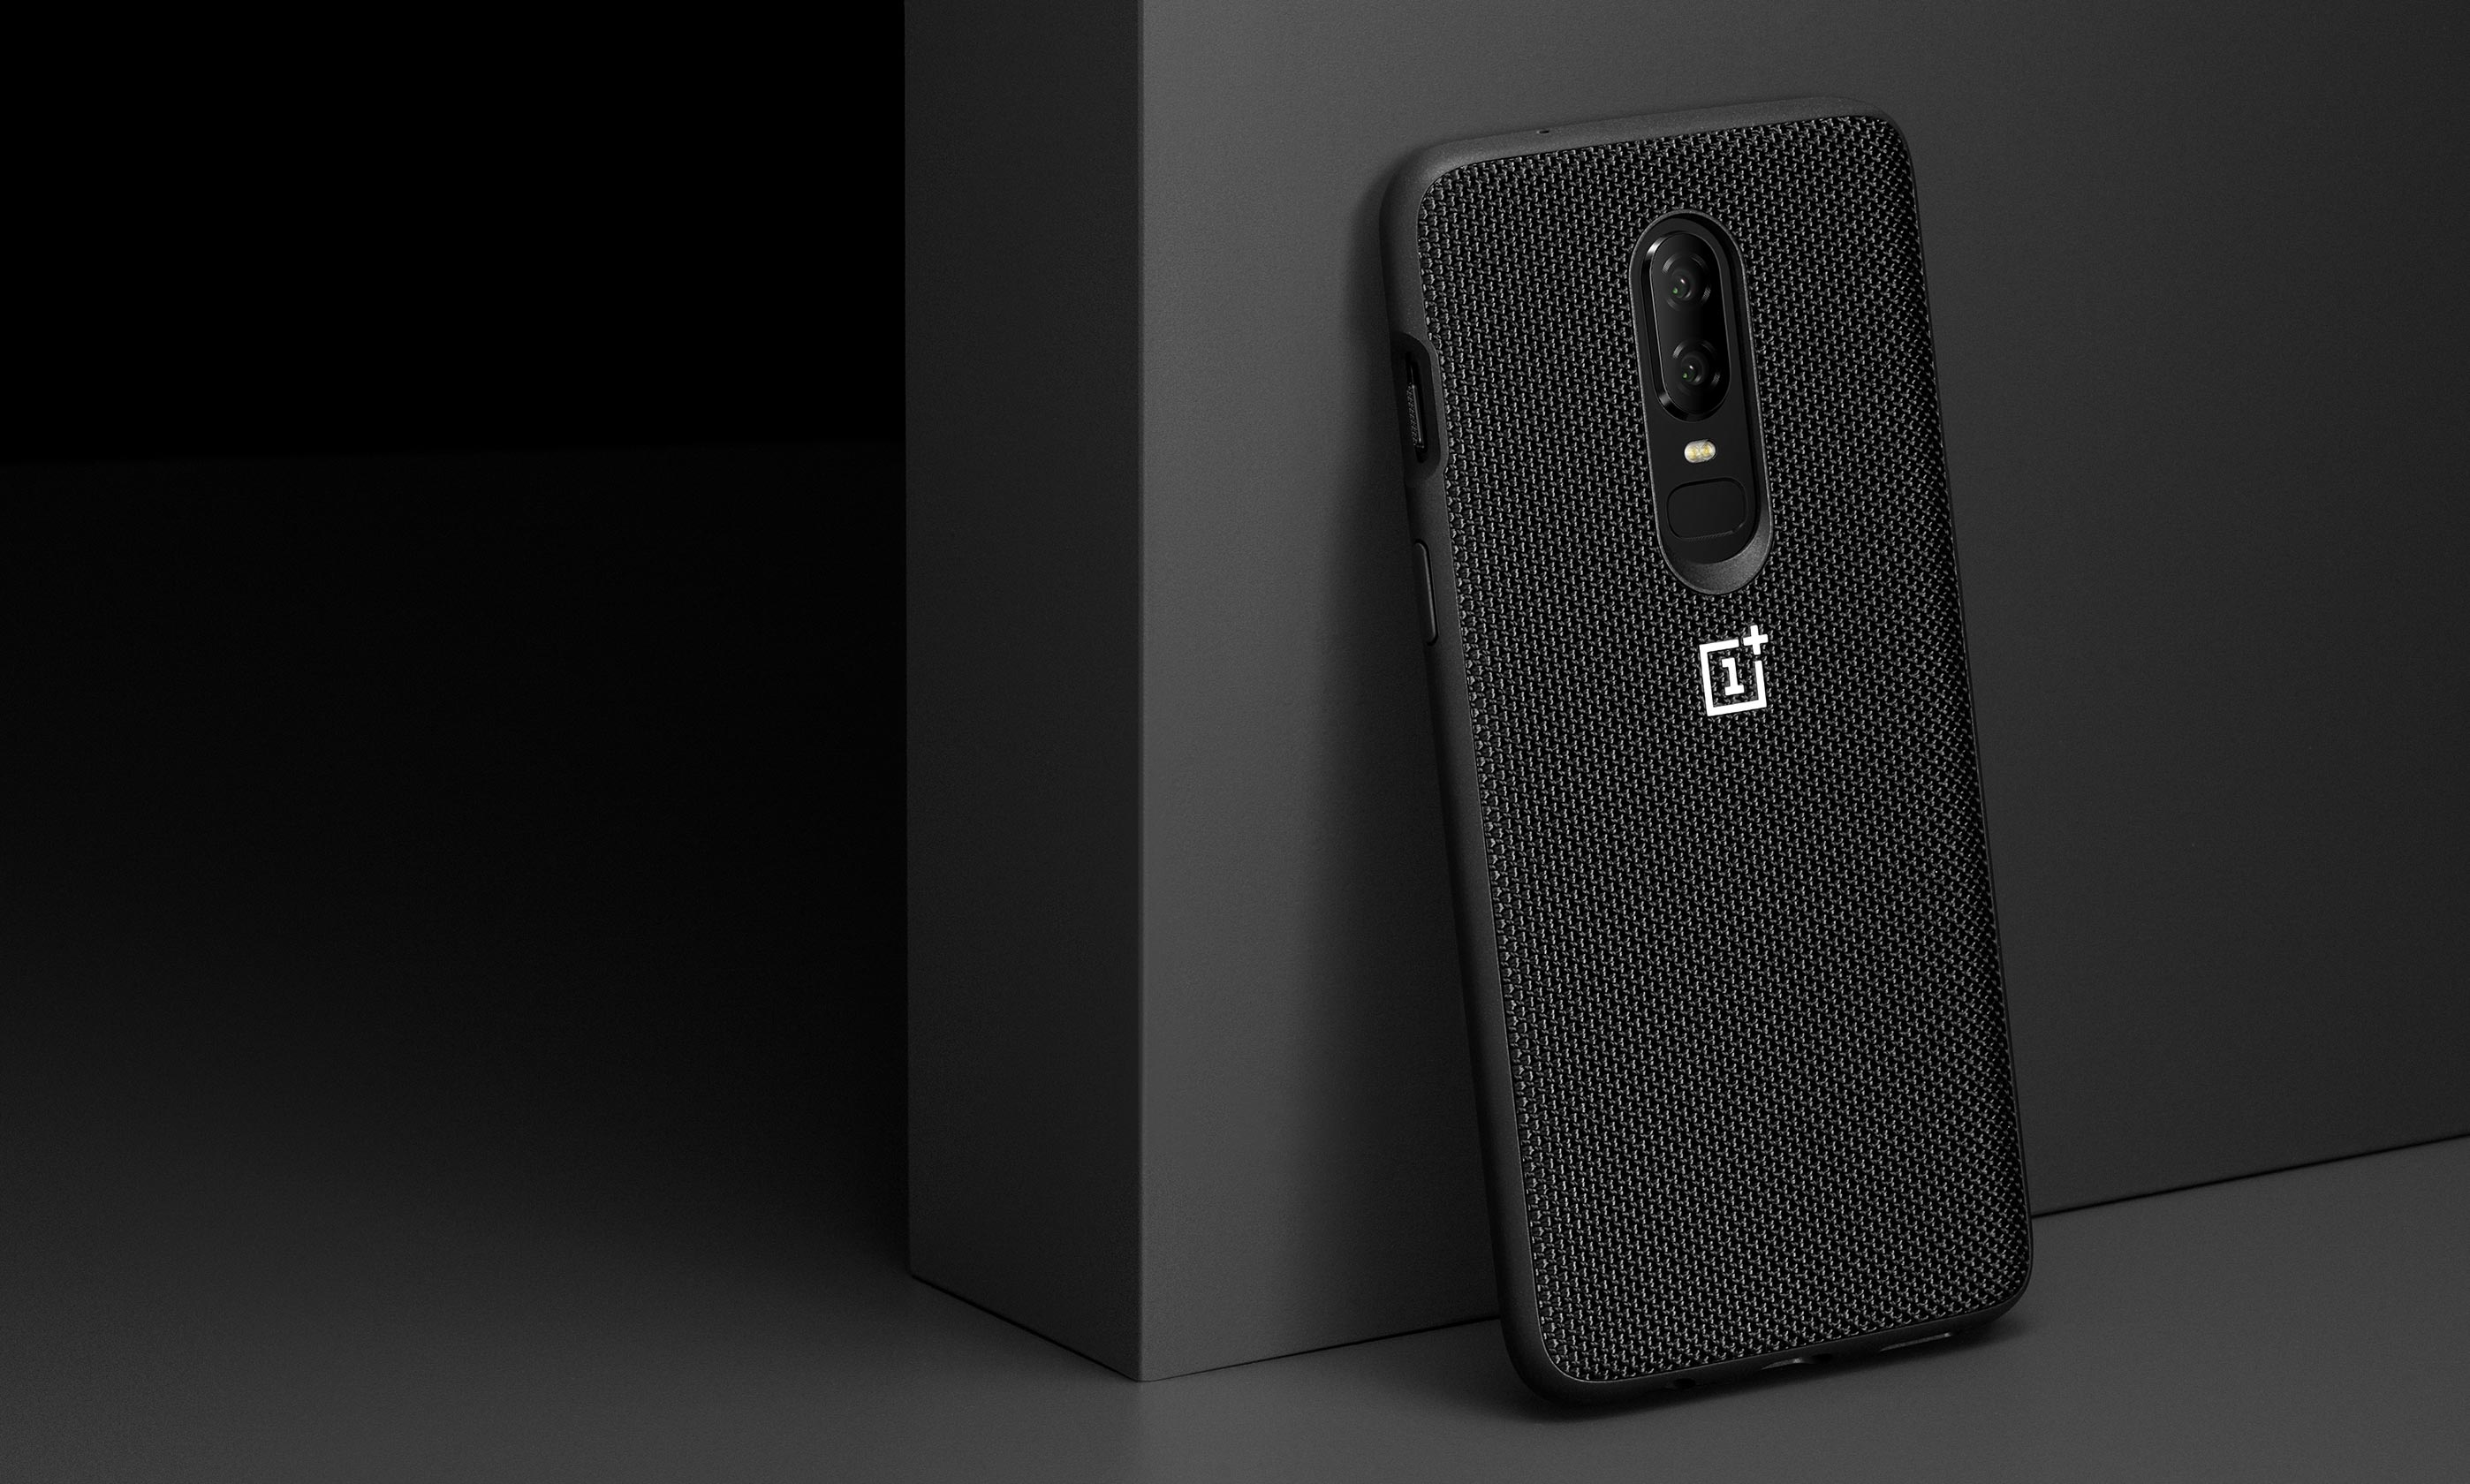 buy online 61823 ce948 Oneplus 6 Case 100% Original Official Sandstone Silicon Nylon Karbon Ebony  One Plus 6 6T Bumper Case Oneplus 6T Back Cover